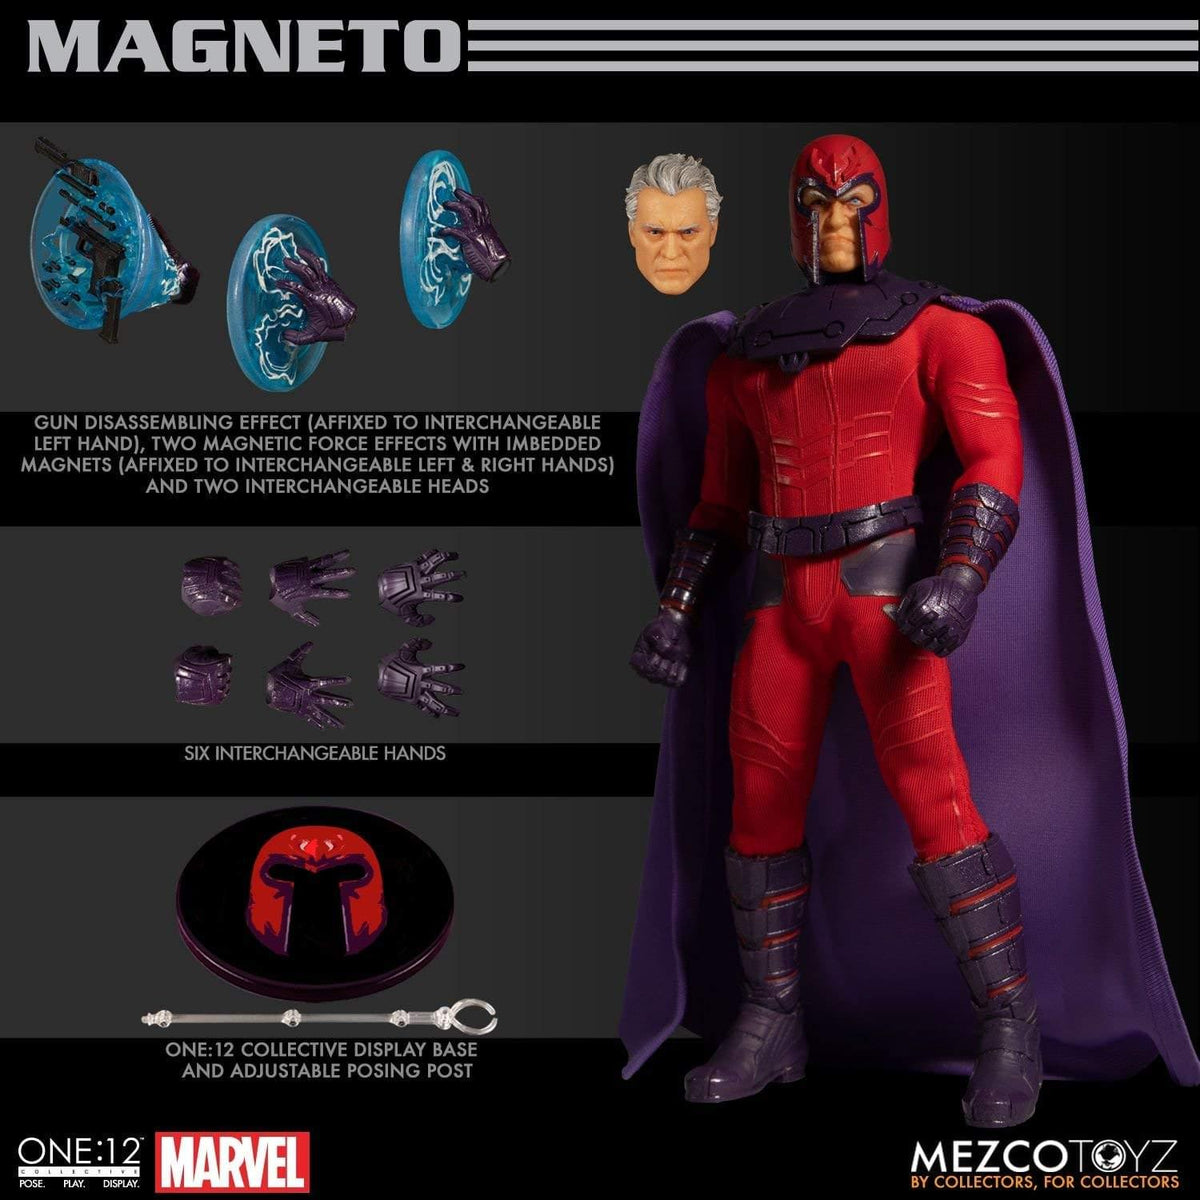 Marvel One 12 Collective Action Figure | Magneto